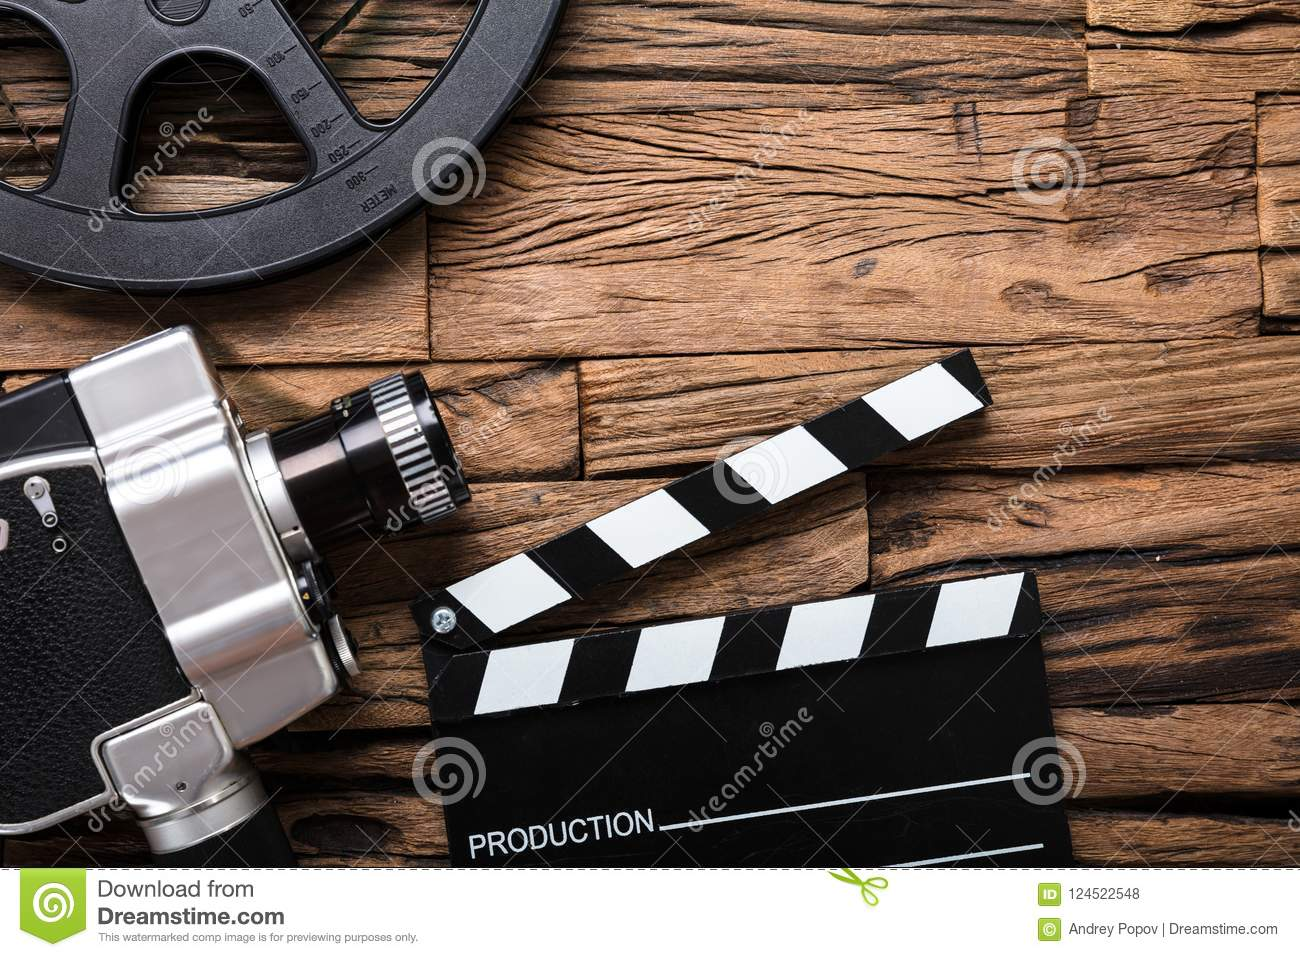 Movie Camera With Film Reel And Clapper Board On Wood Stock Photo - Image  of industry, concepts: 124522548